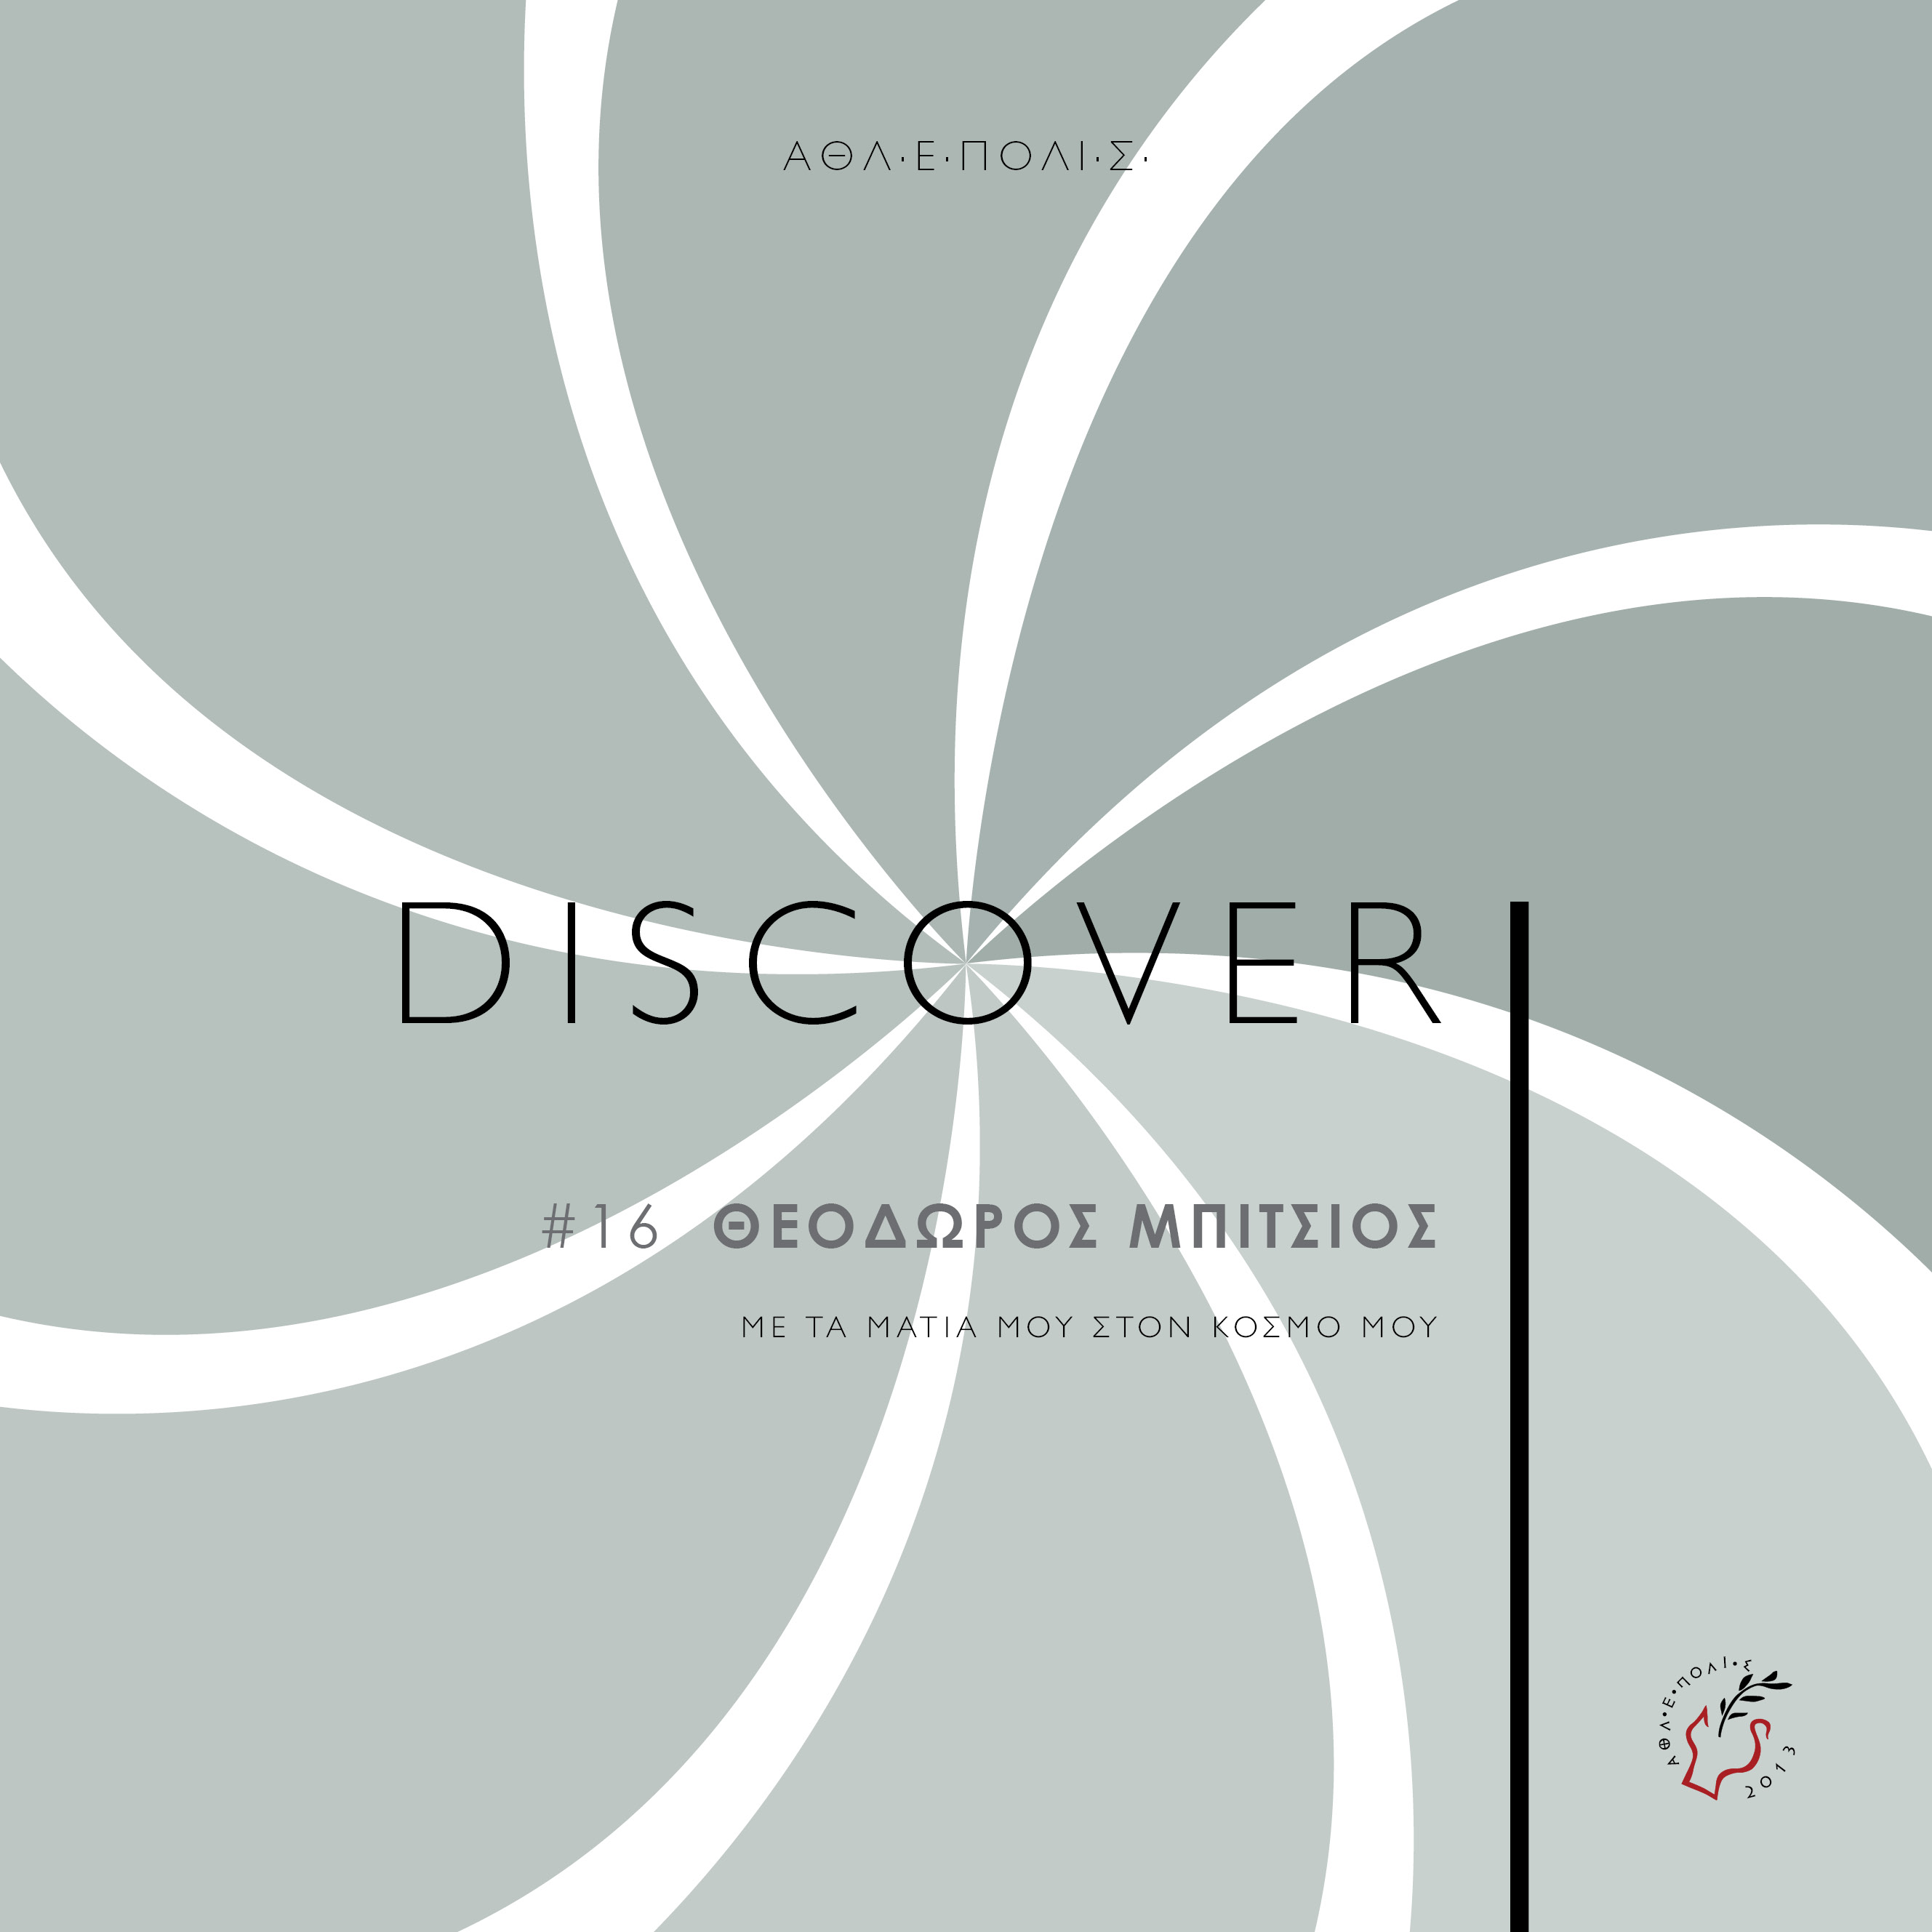 DISCOVER #16 Theodwros Mpitsios Cover